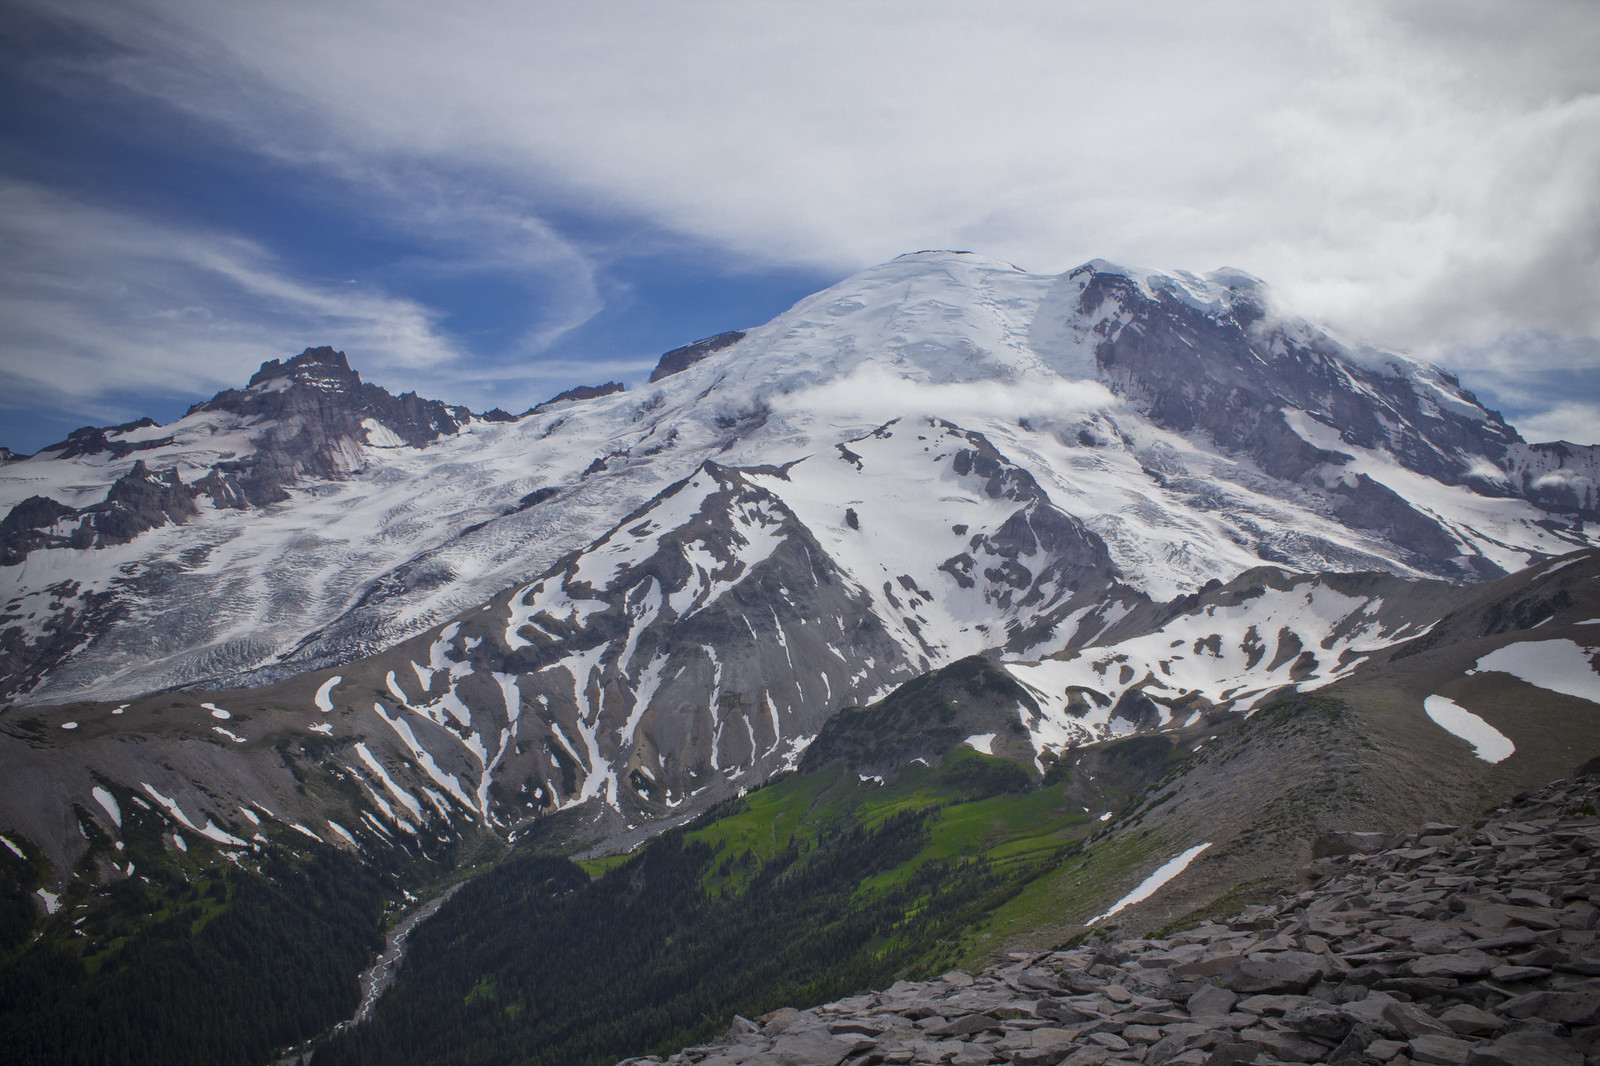 burroughs mountain loop trail day hikes in mt rainier national park washington